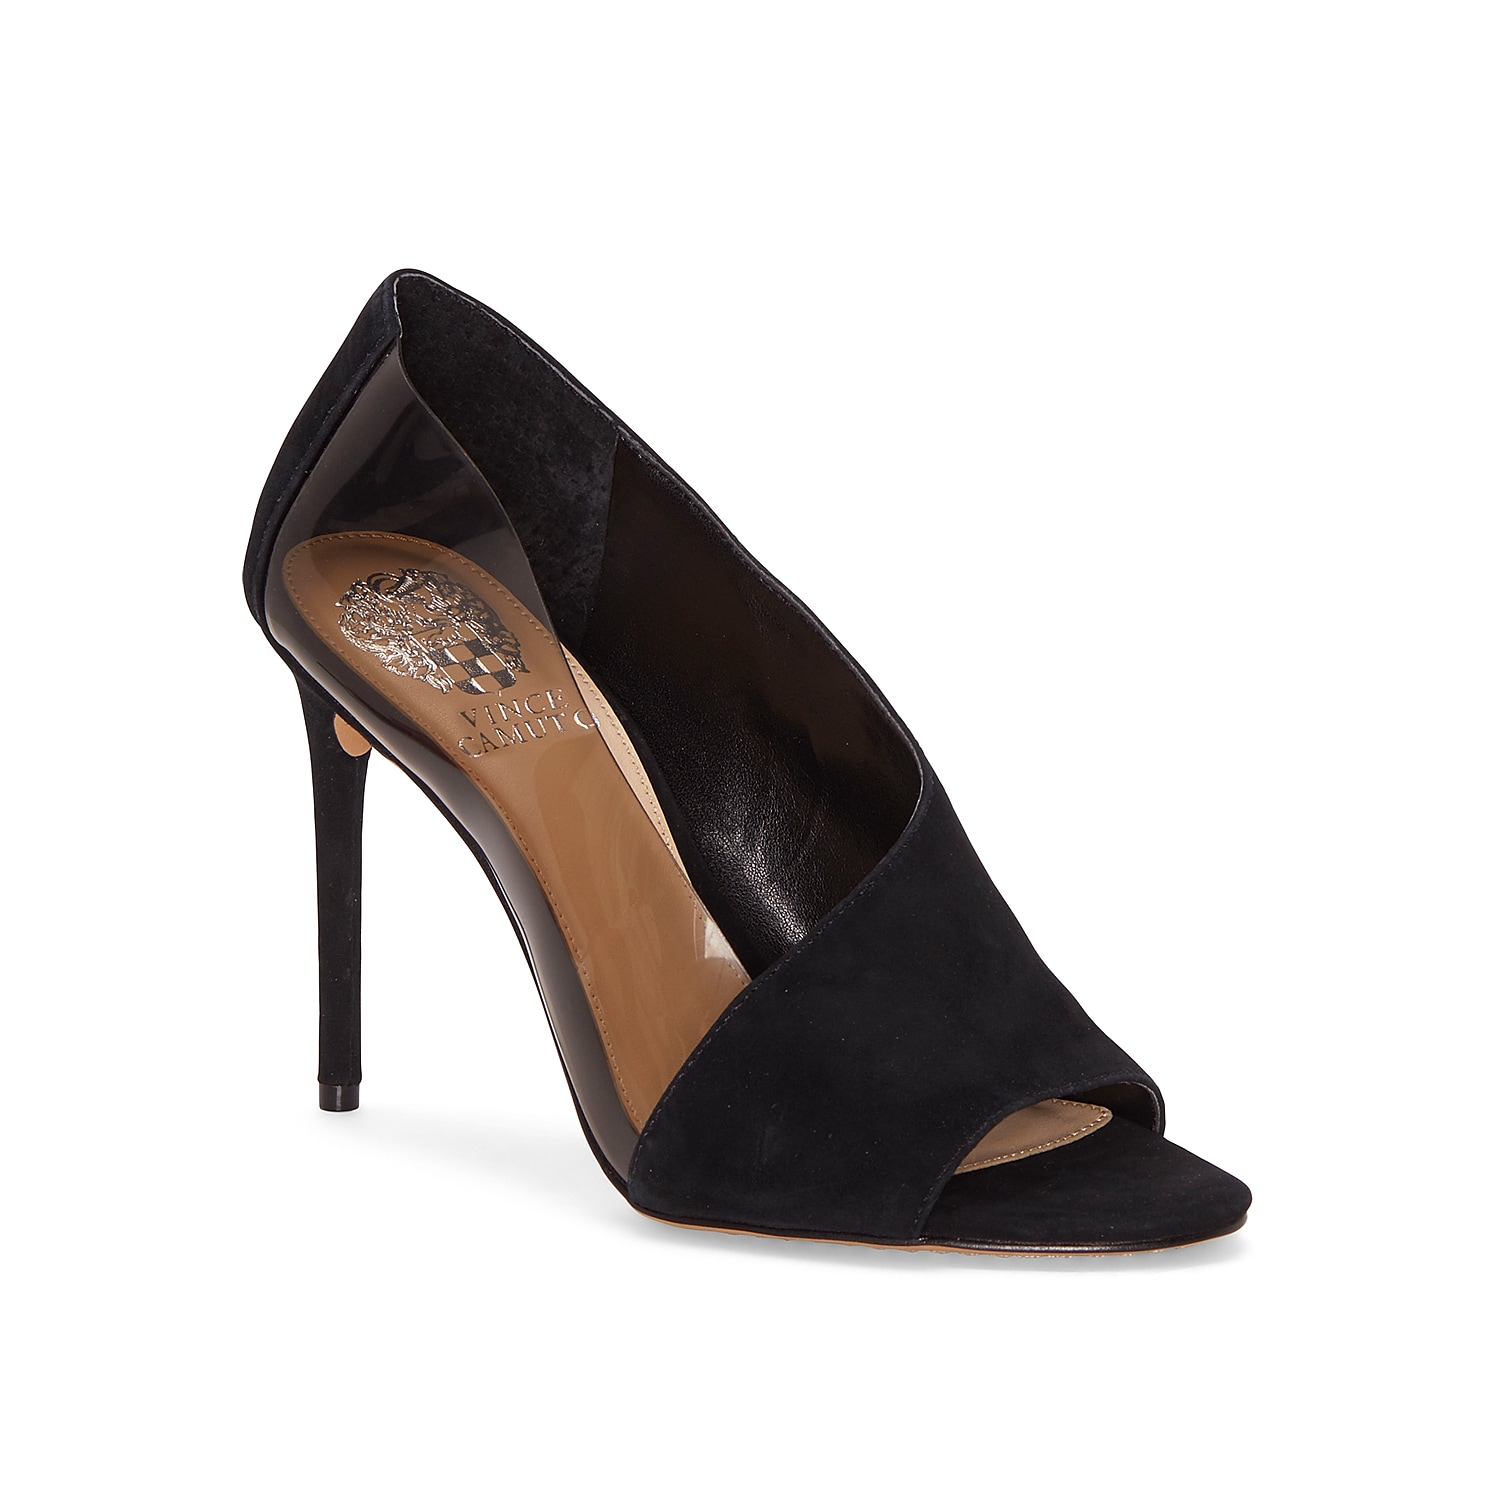 You\\\'ll be sure to catch eyes in the Rivestan pump from Vince Camuto. This stiletto features d\\\'Orsay-inspired styling with an exterior lucite panel for bold appeal.